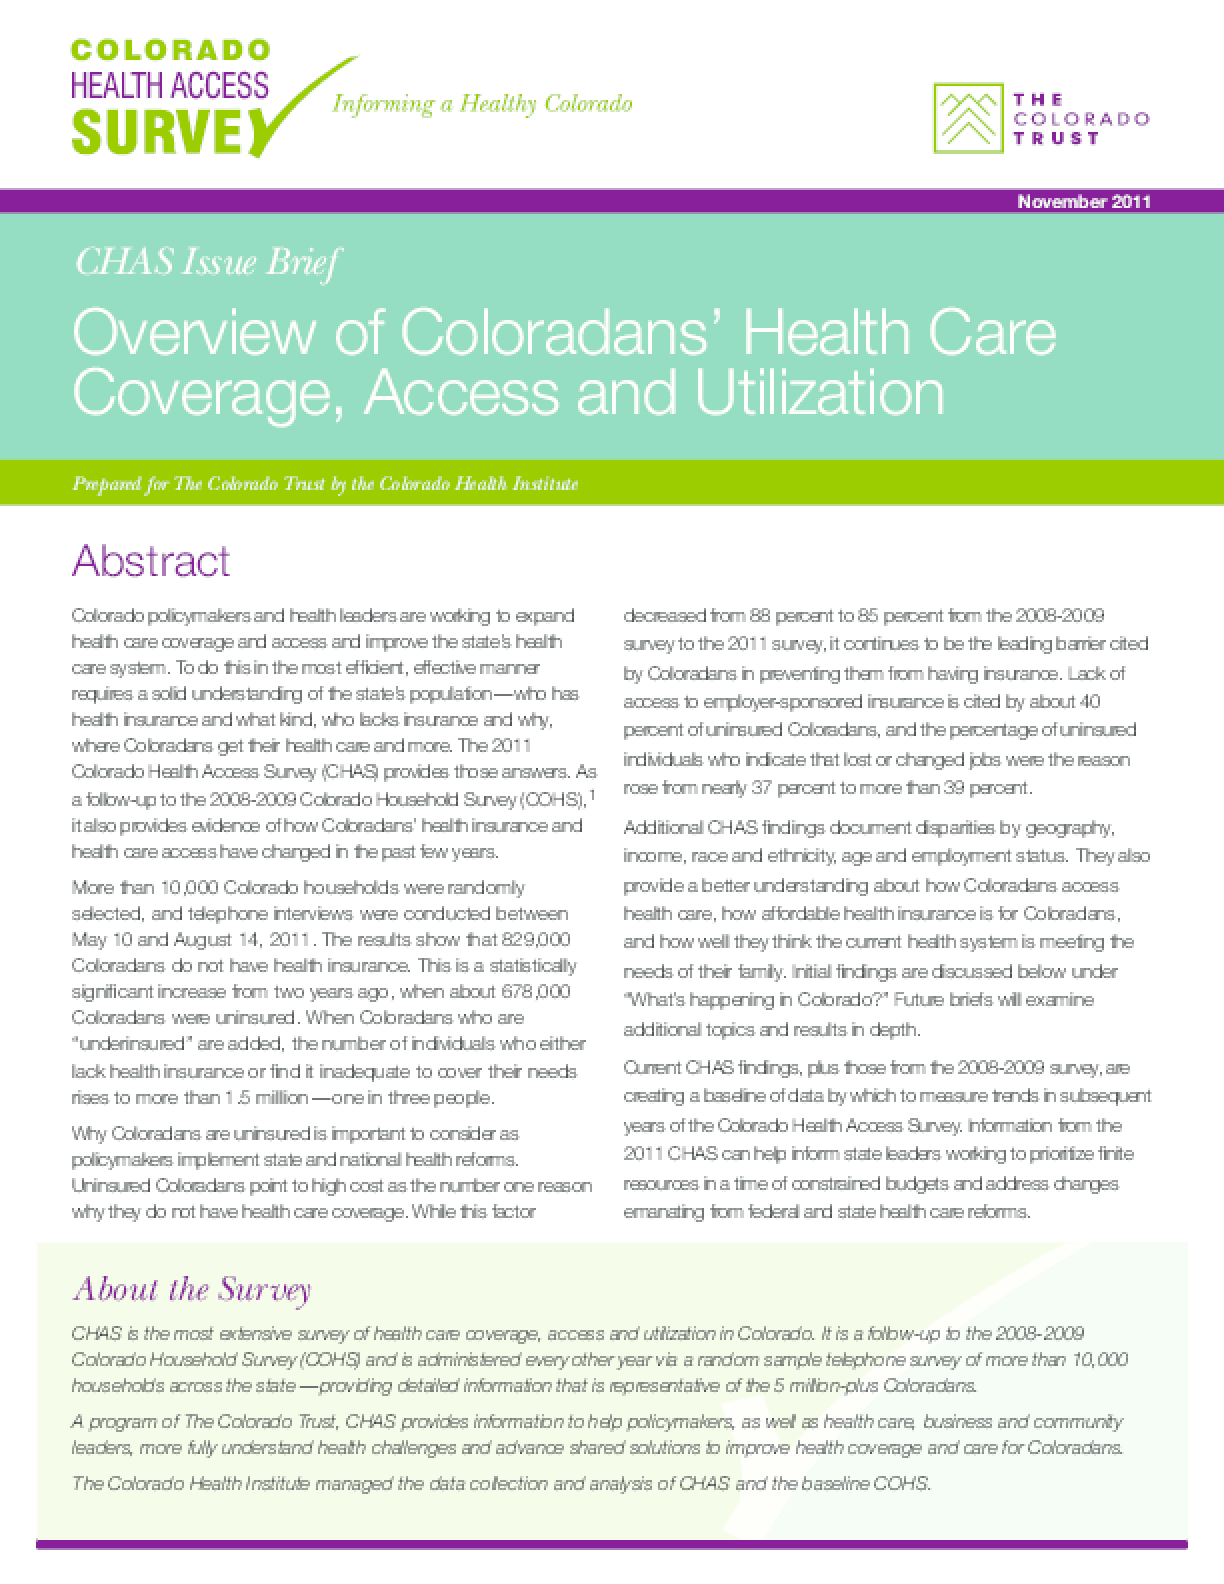 Overview of Coloradans' Health Care Coverage, Access and Utilization 2011